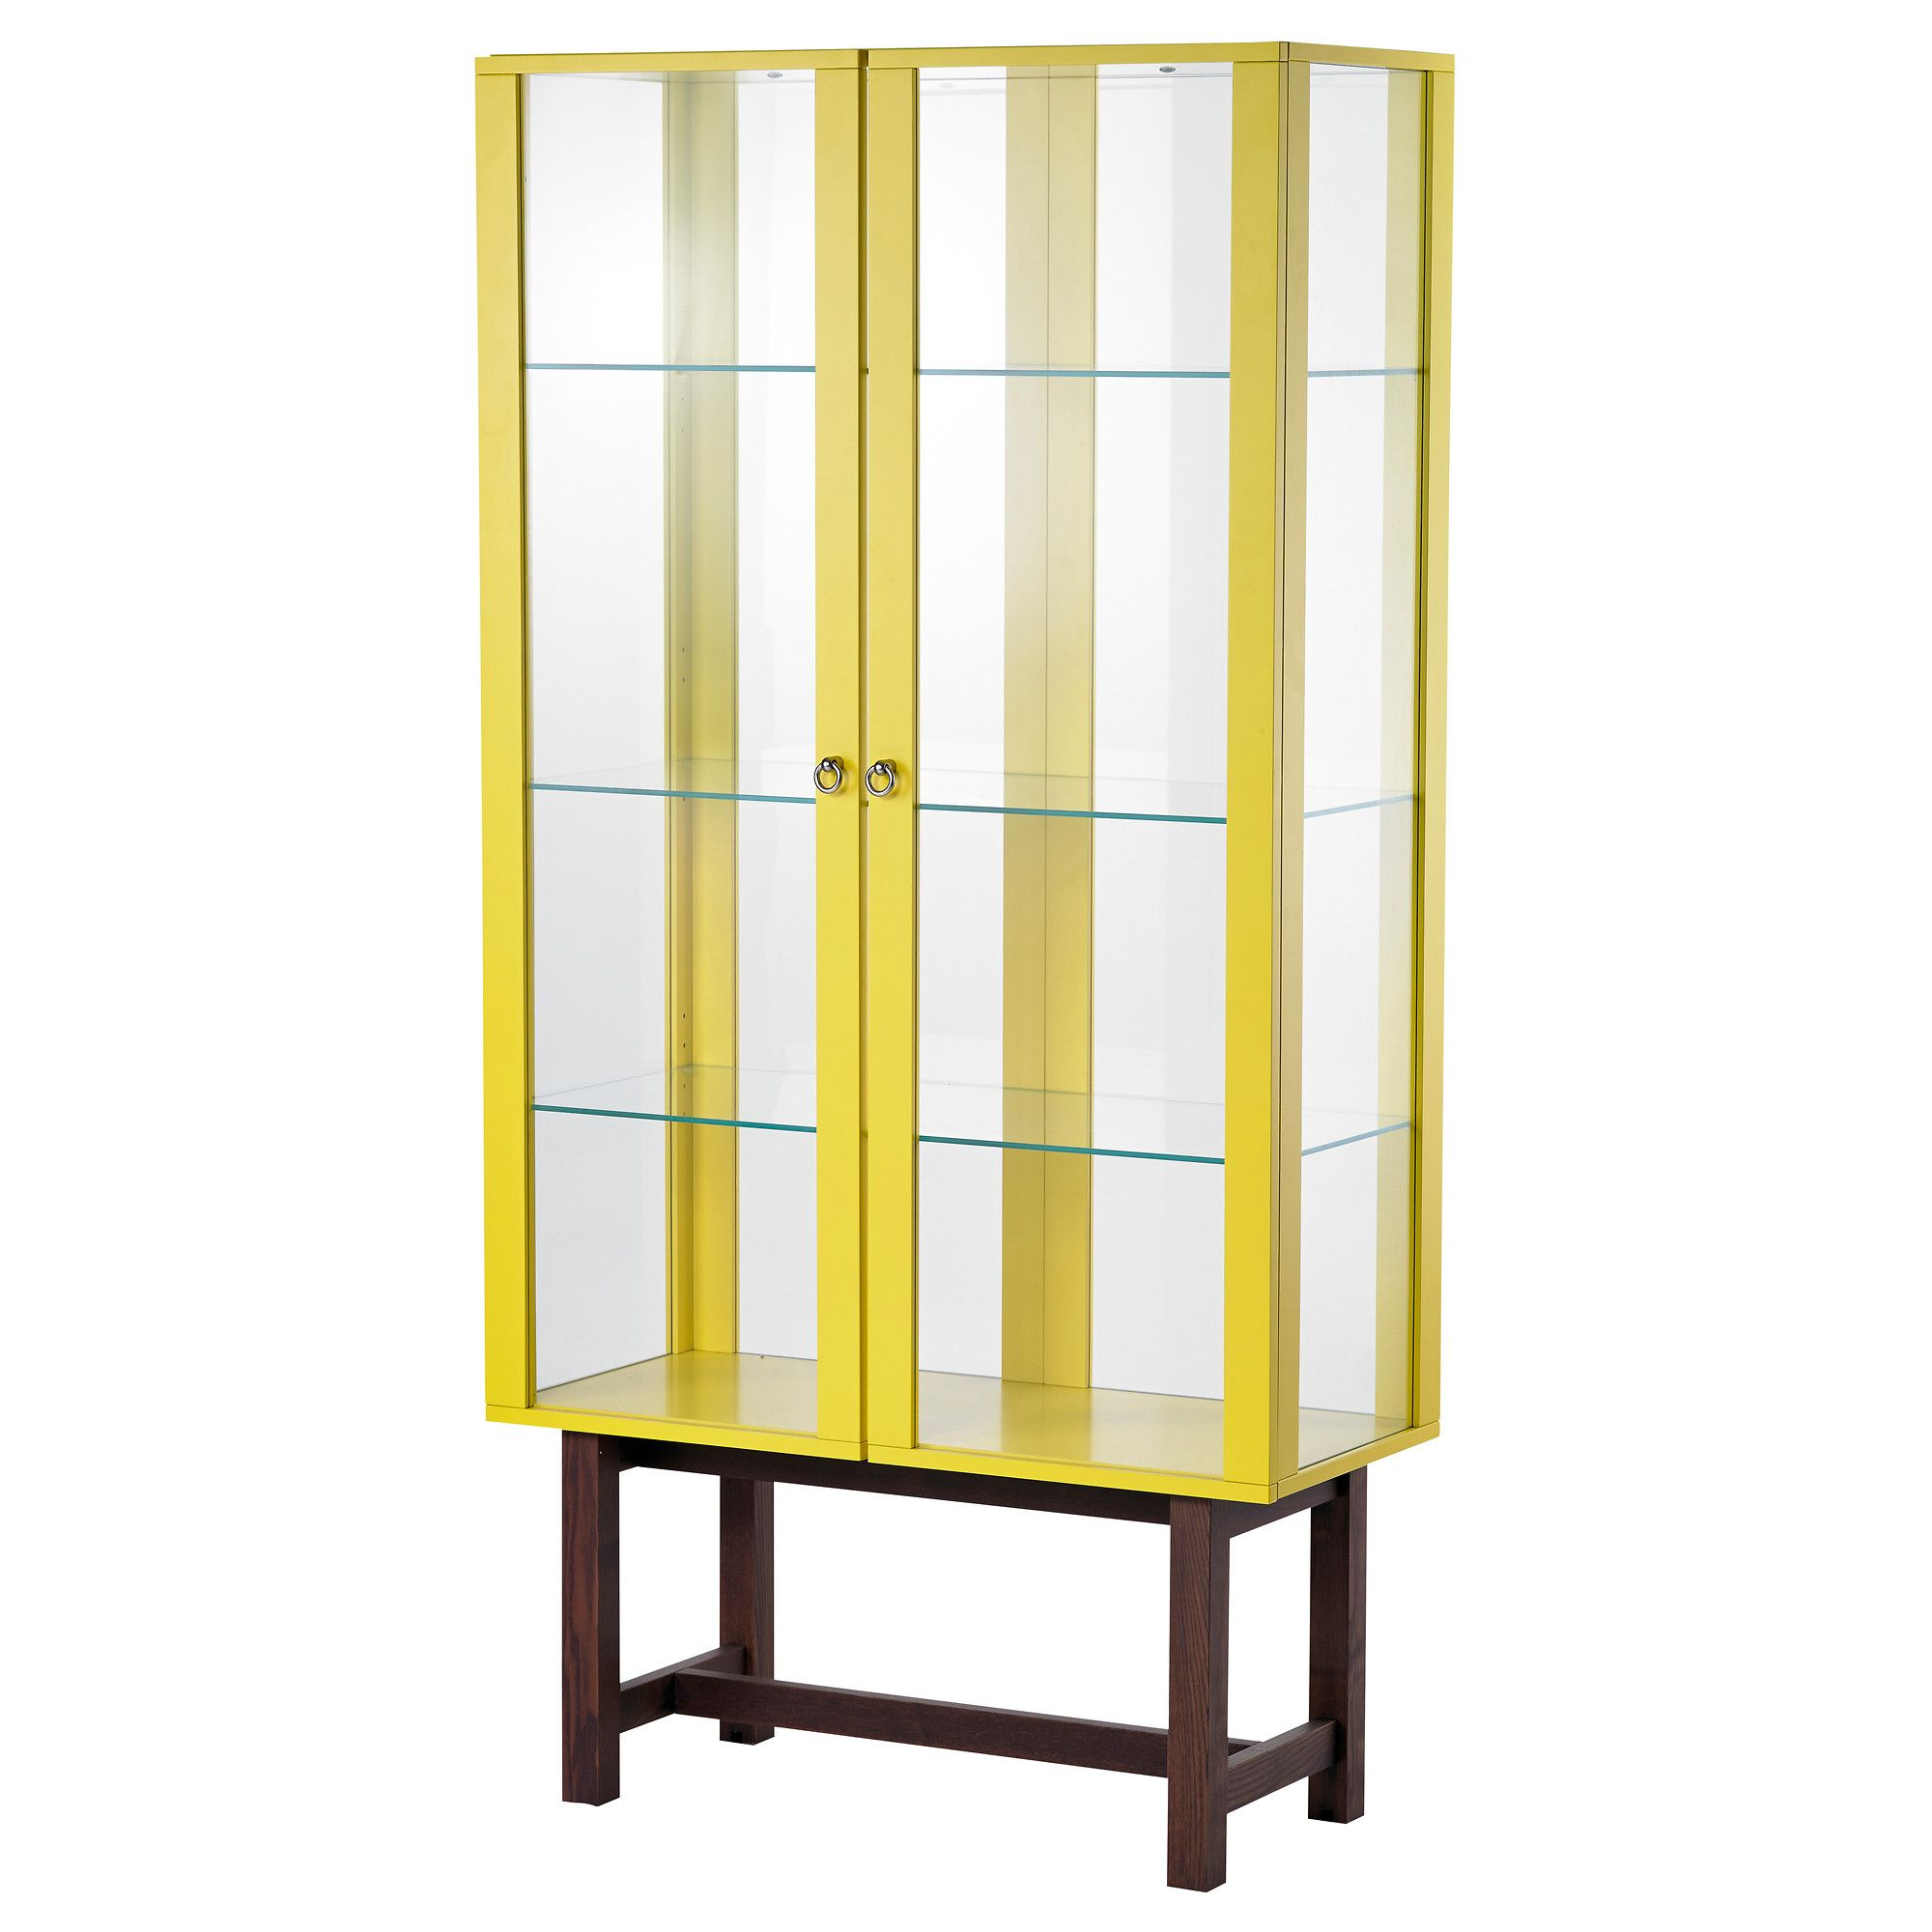 In Our Living Room To Display Star Wars Collection Stockholm Glass Door Cabinet Yellow Ikea